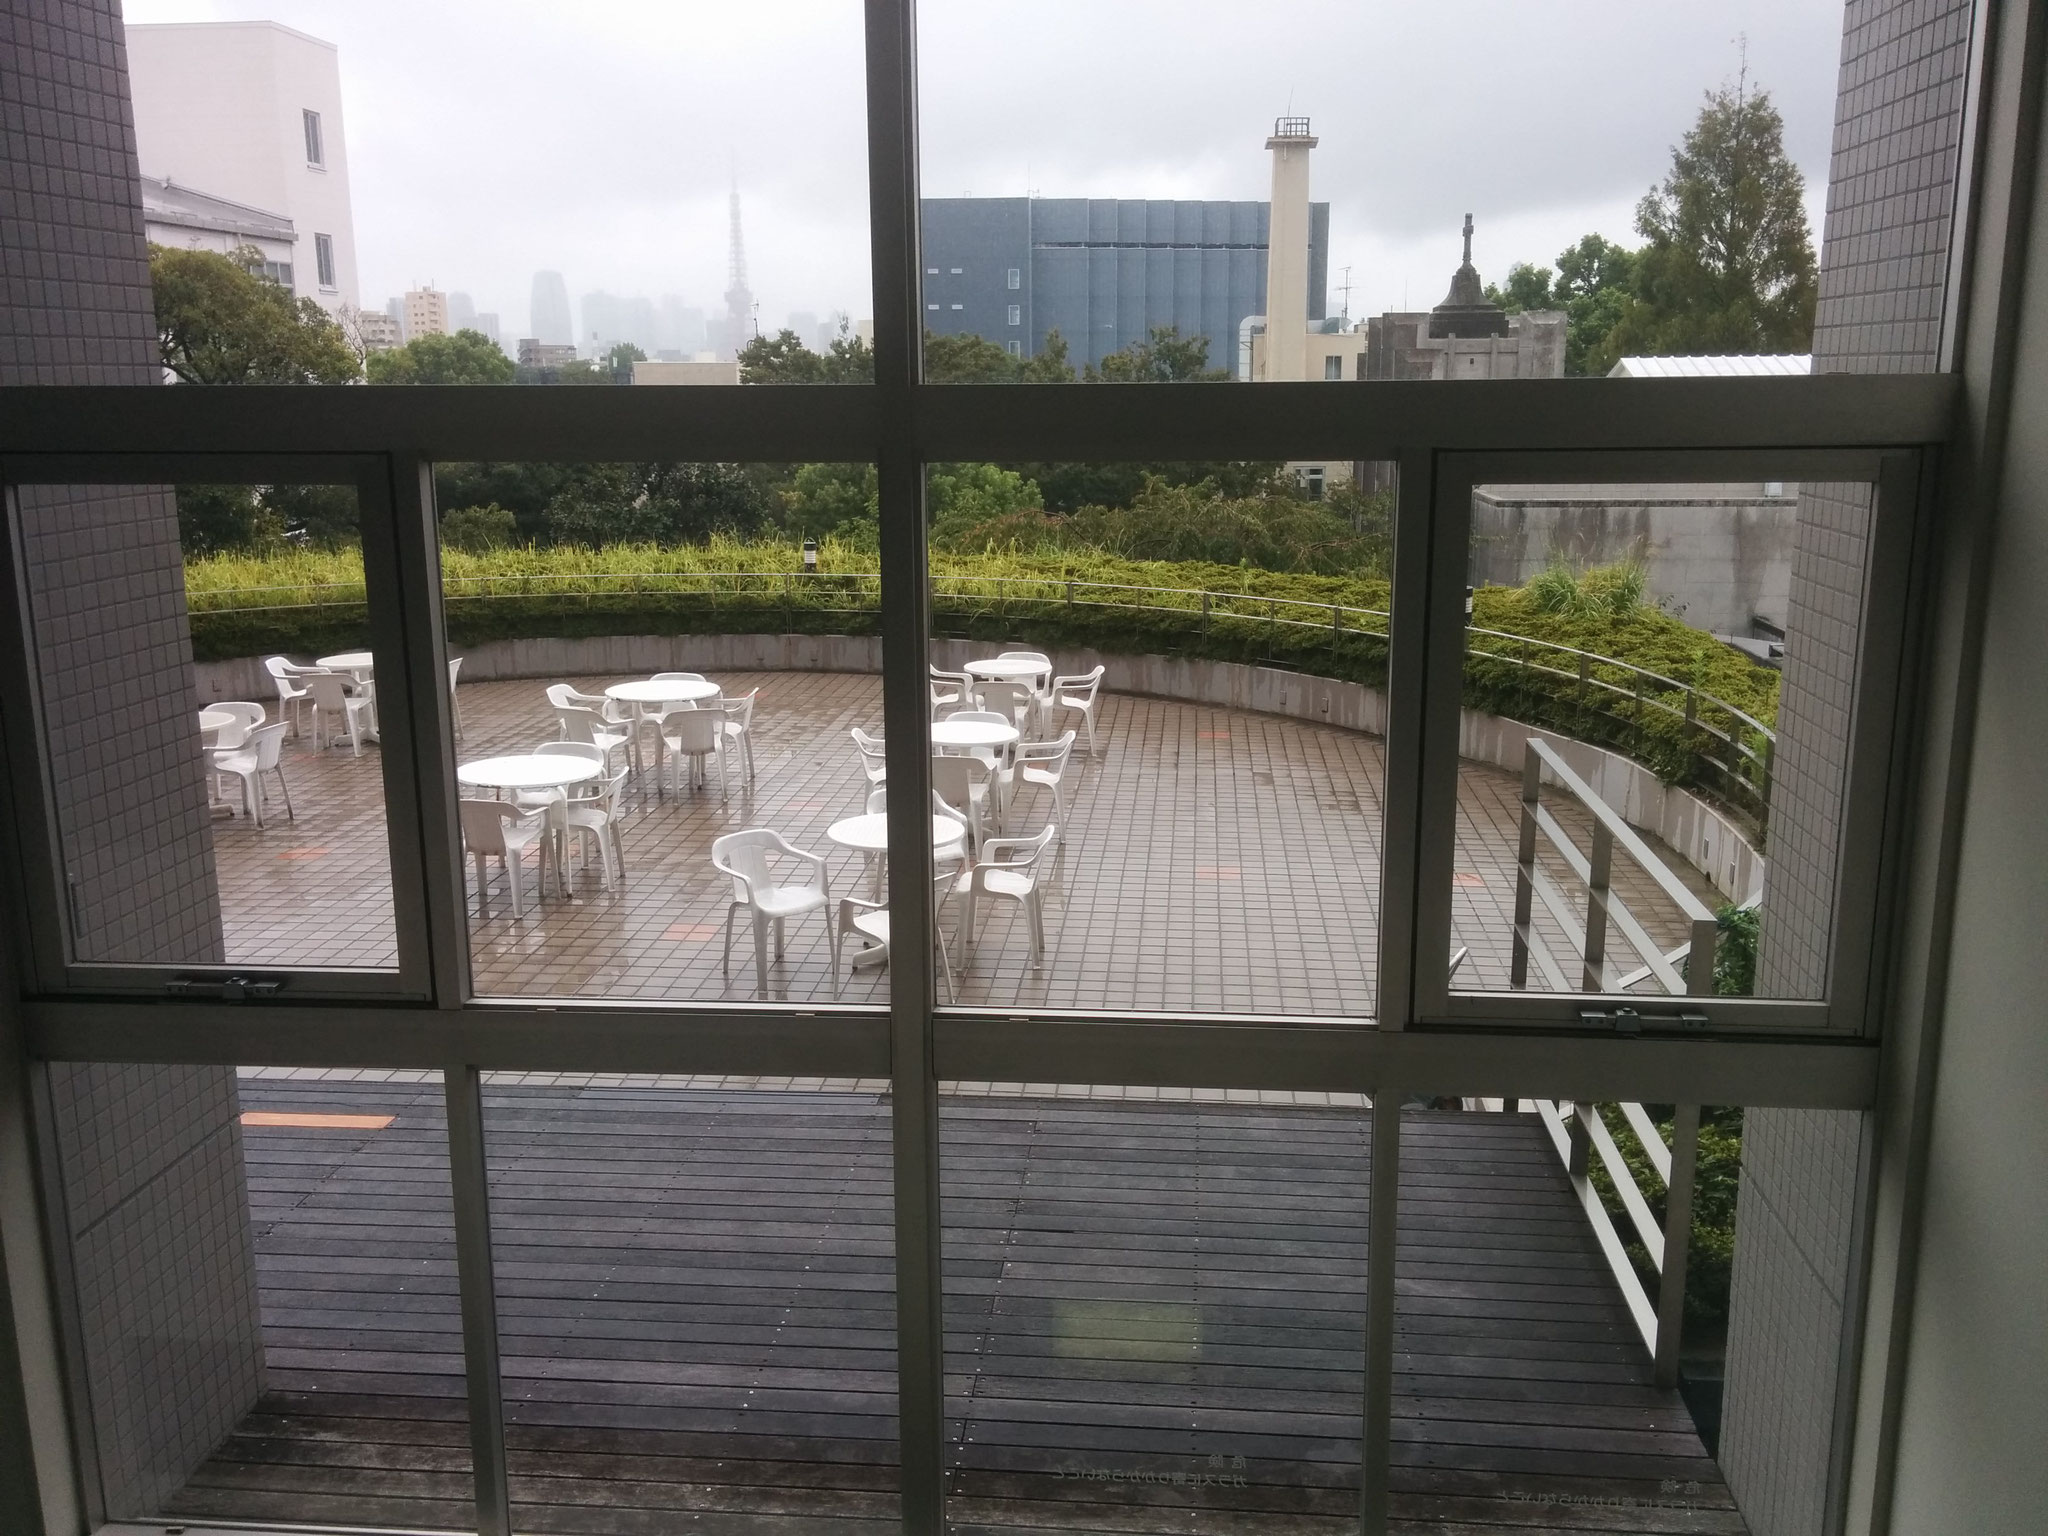 10 Hiroo - view from inside the building